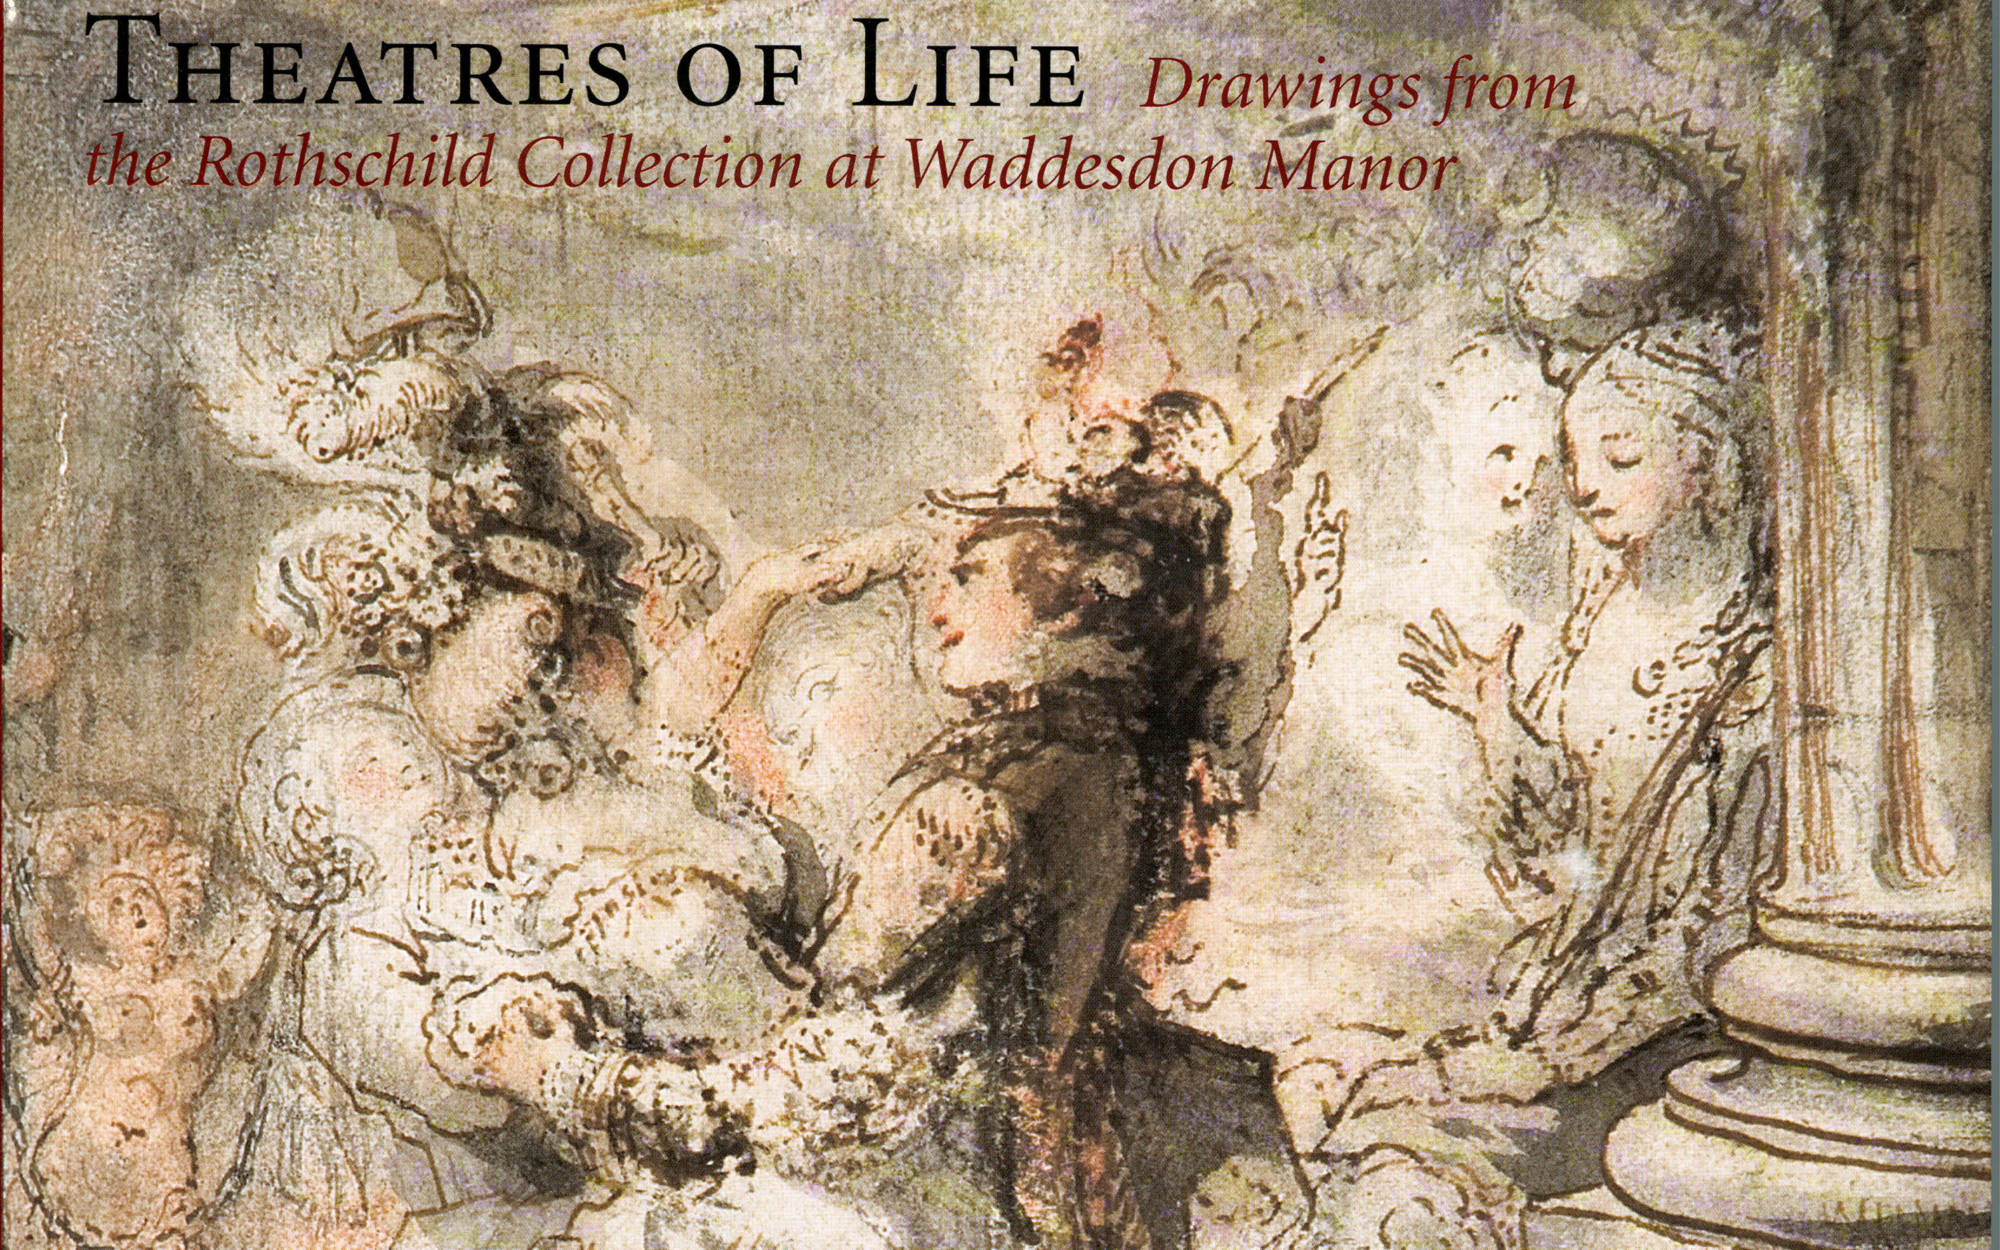 Theatres-of-Life-cover_3000x1875